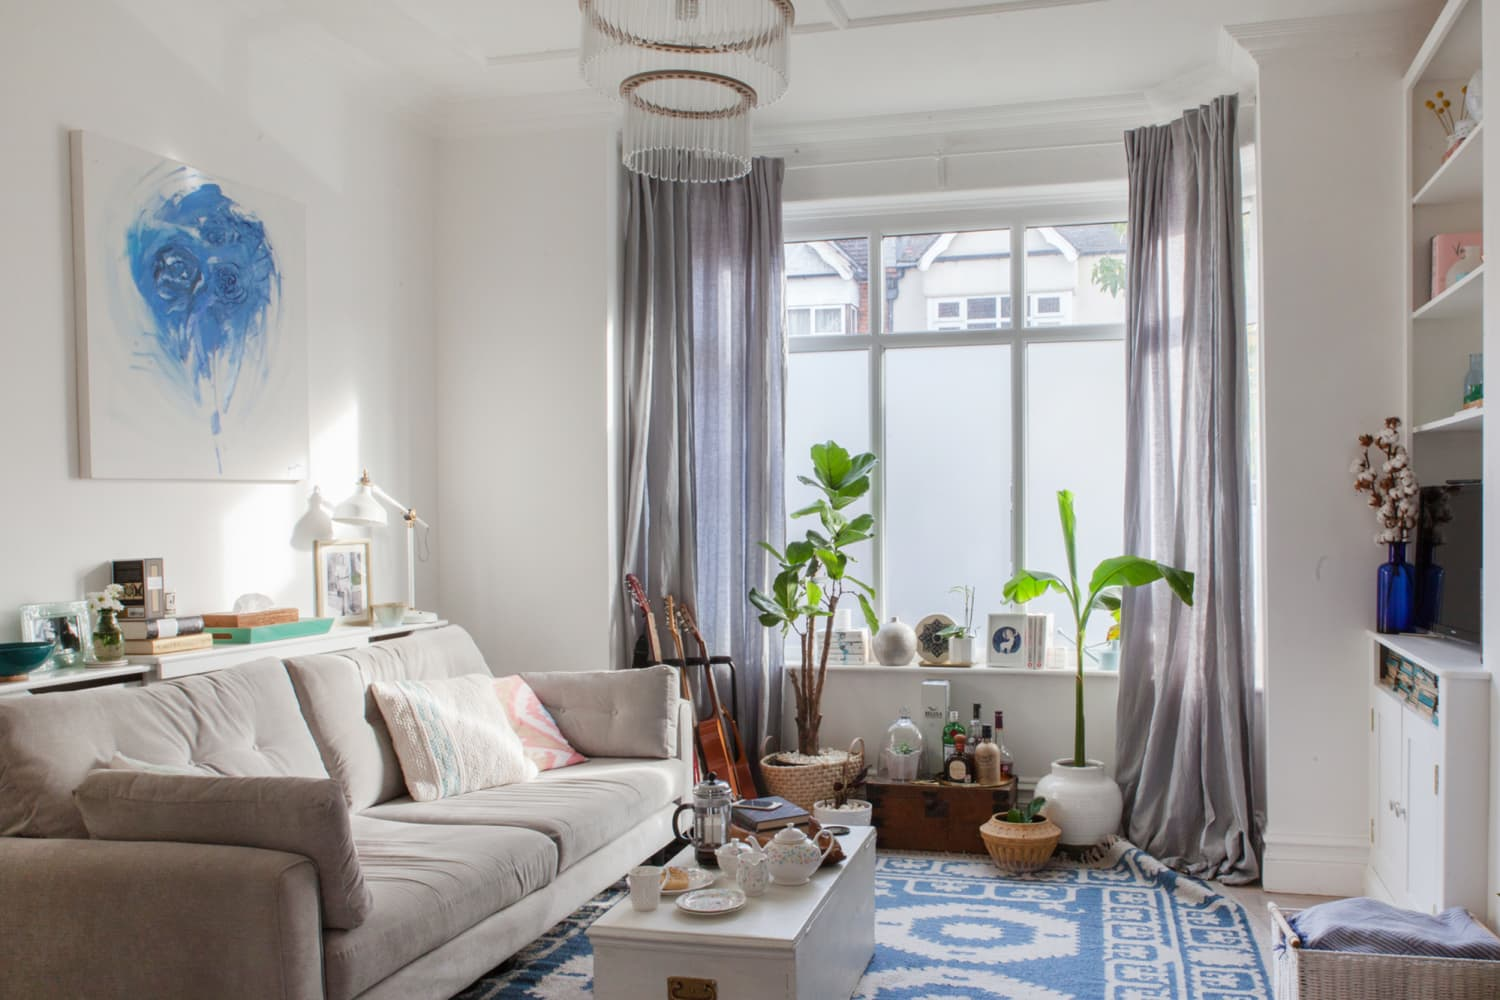 How To Take Your Home to the Next Level (With Stuff You Already Have)